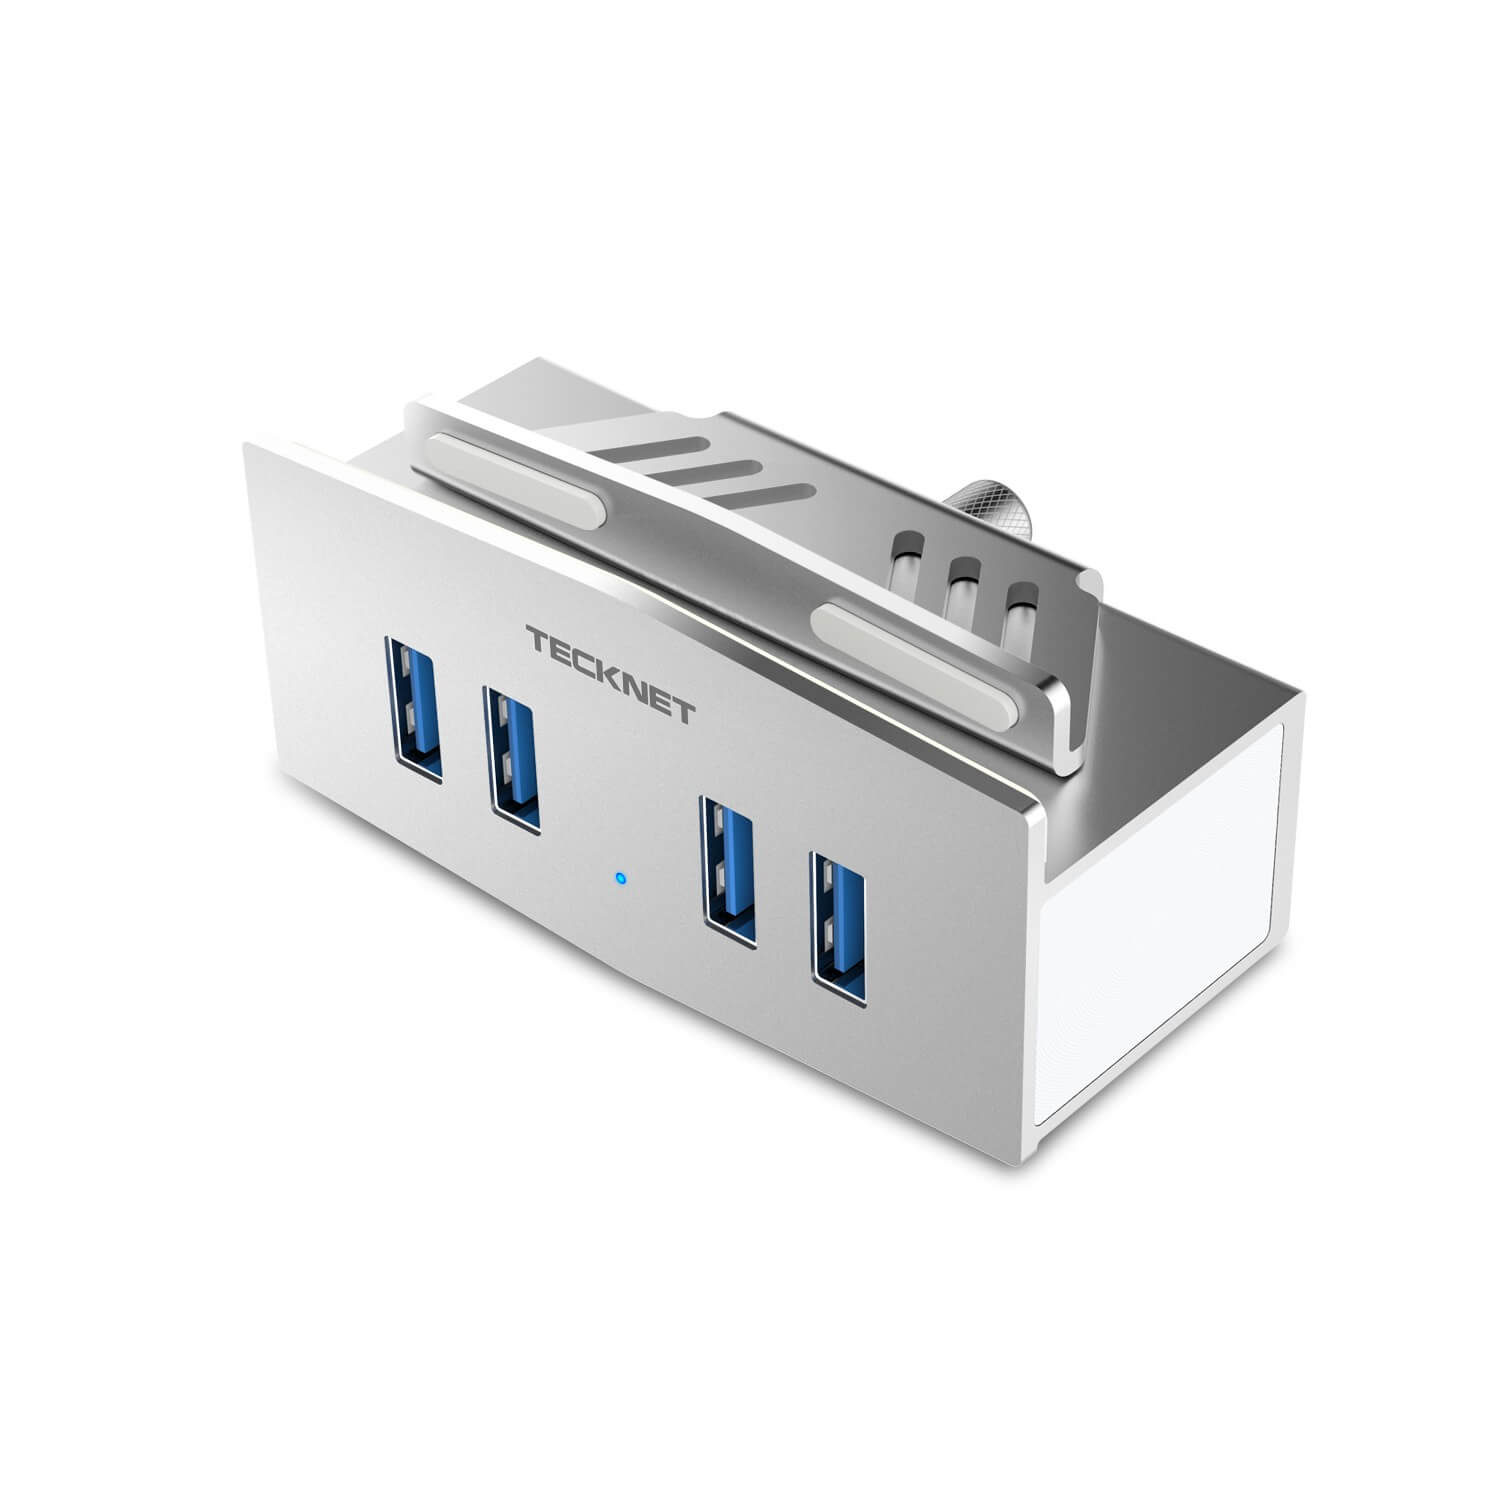 TeckNet HU049 Aluminum USB 3.0 4-Port Clamp Hub